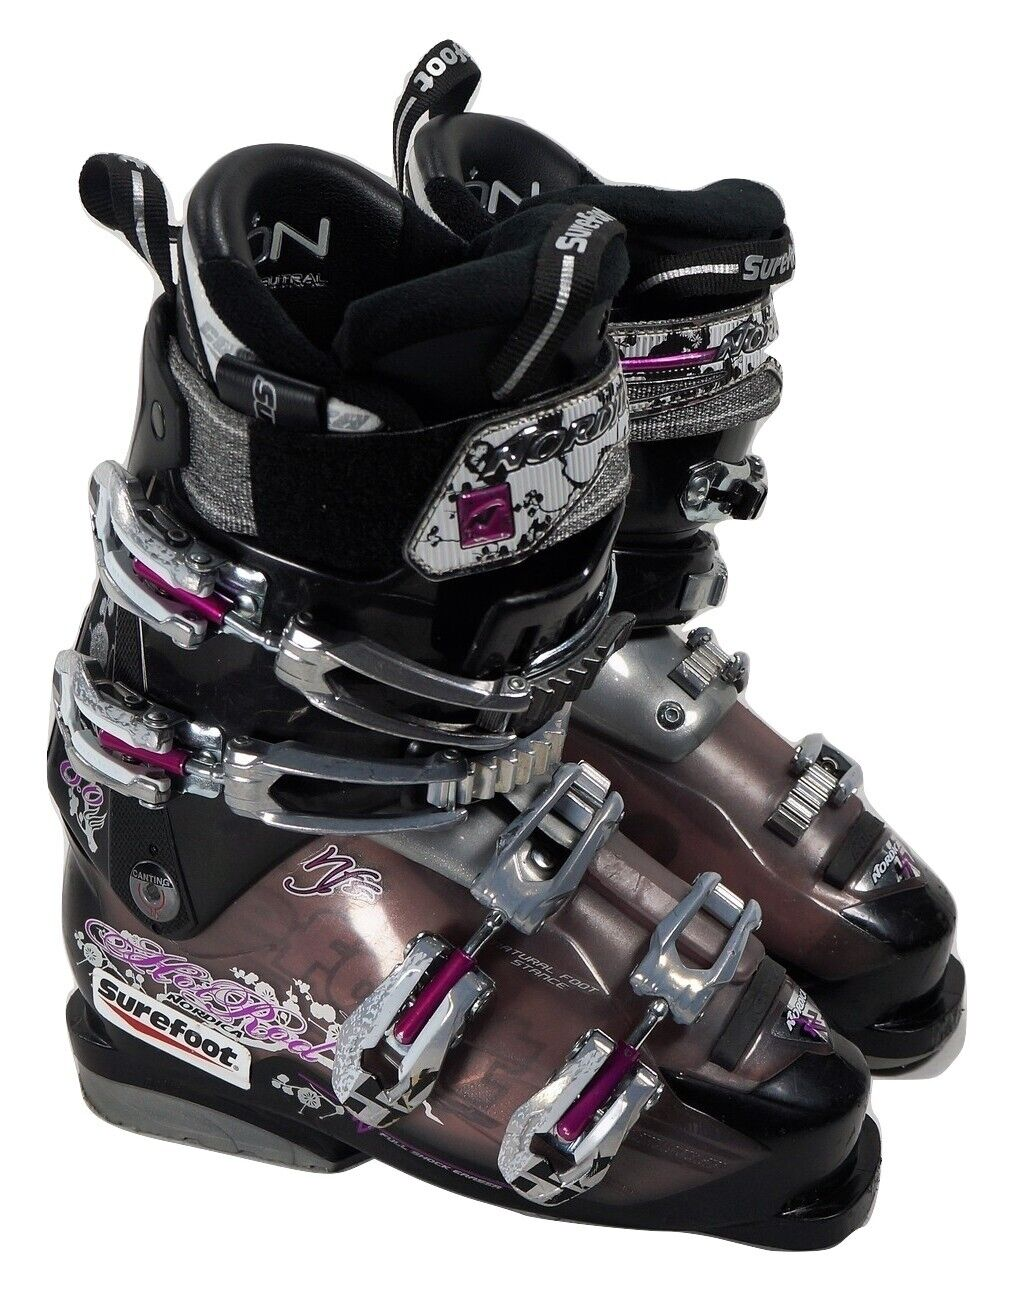 WOMEN'S SKI BOOTS 23.5 NORDICA HOT ROD 8.0 W  US WOMEN'S 6 TO 6.5 SureFoot X2  10 days return